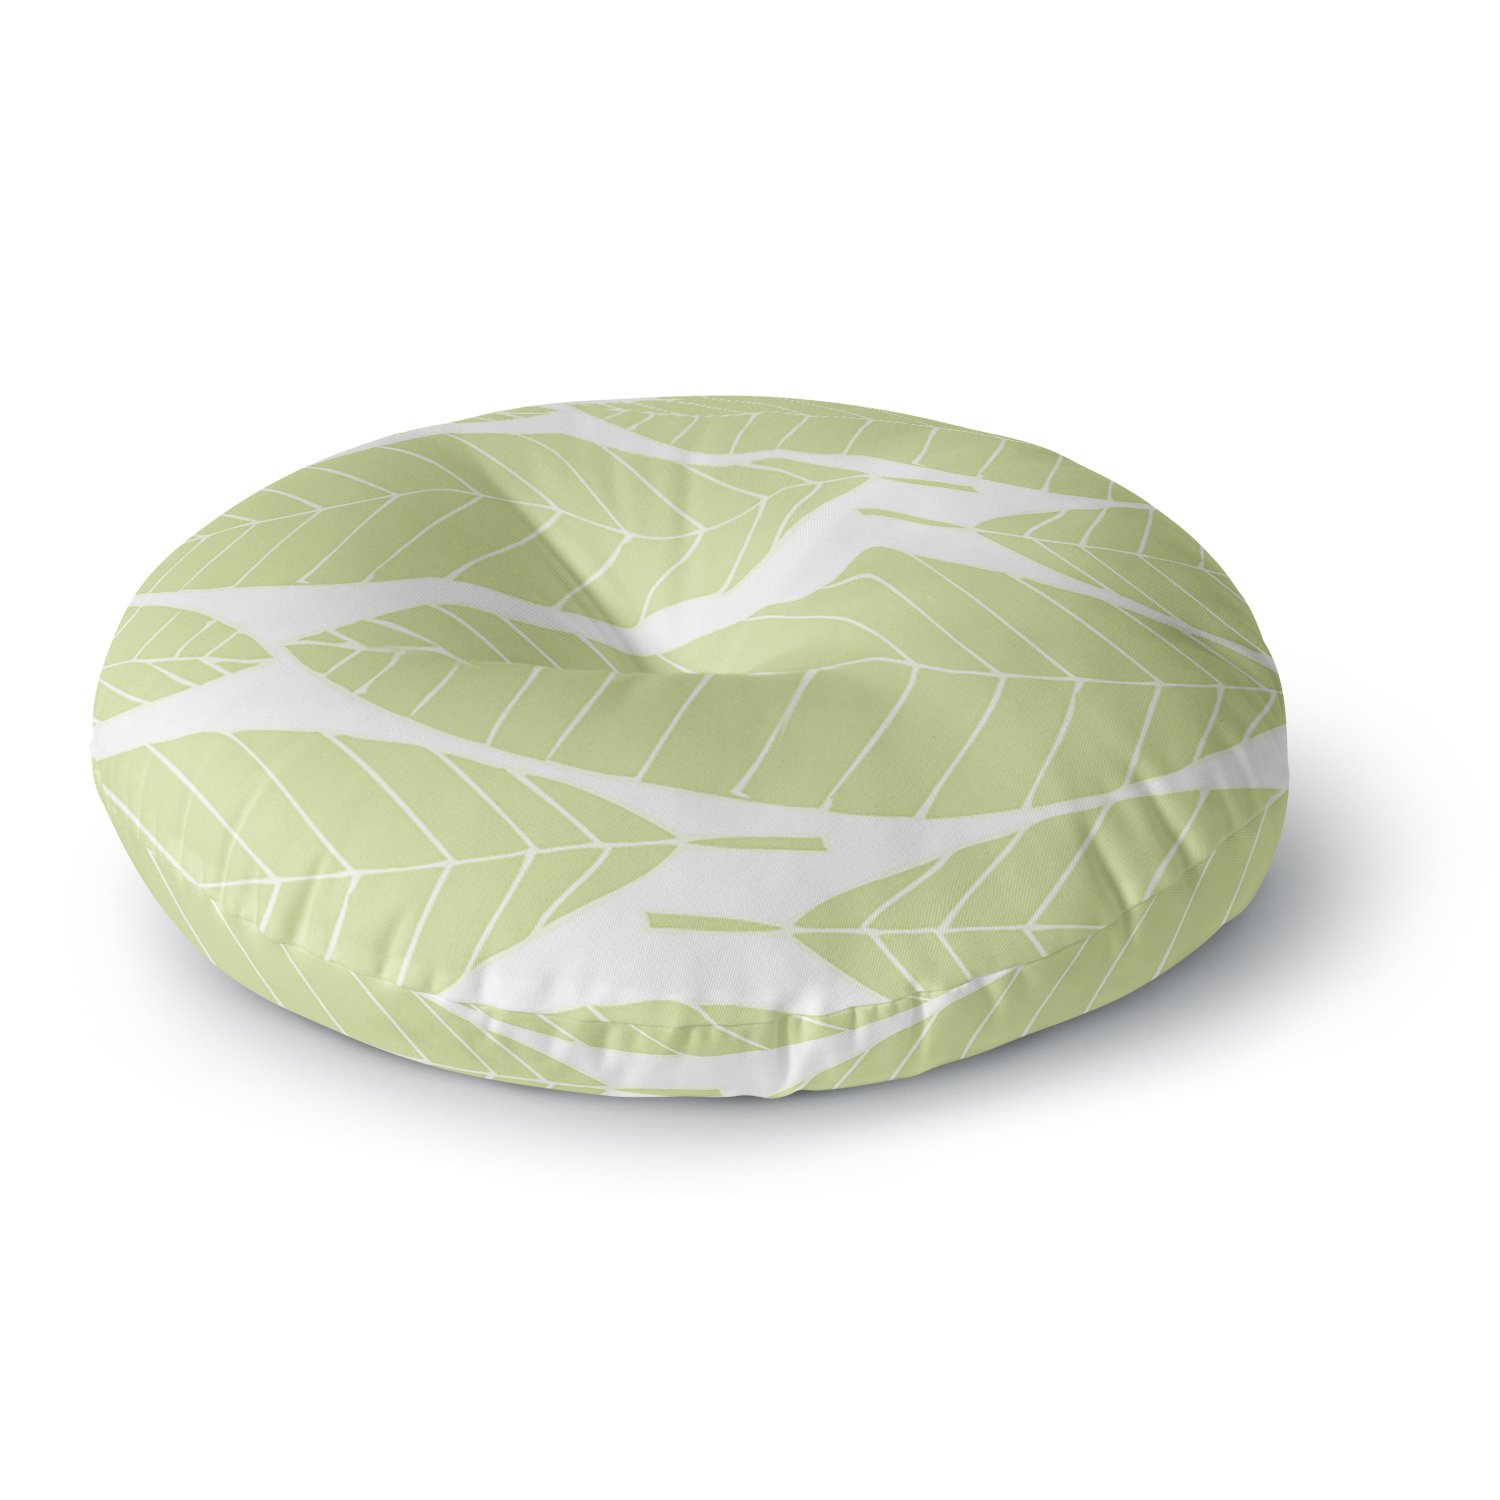 Kess InHouse Anchobee Hojitas Round Floor Pillow 26